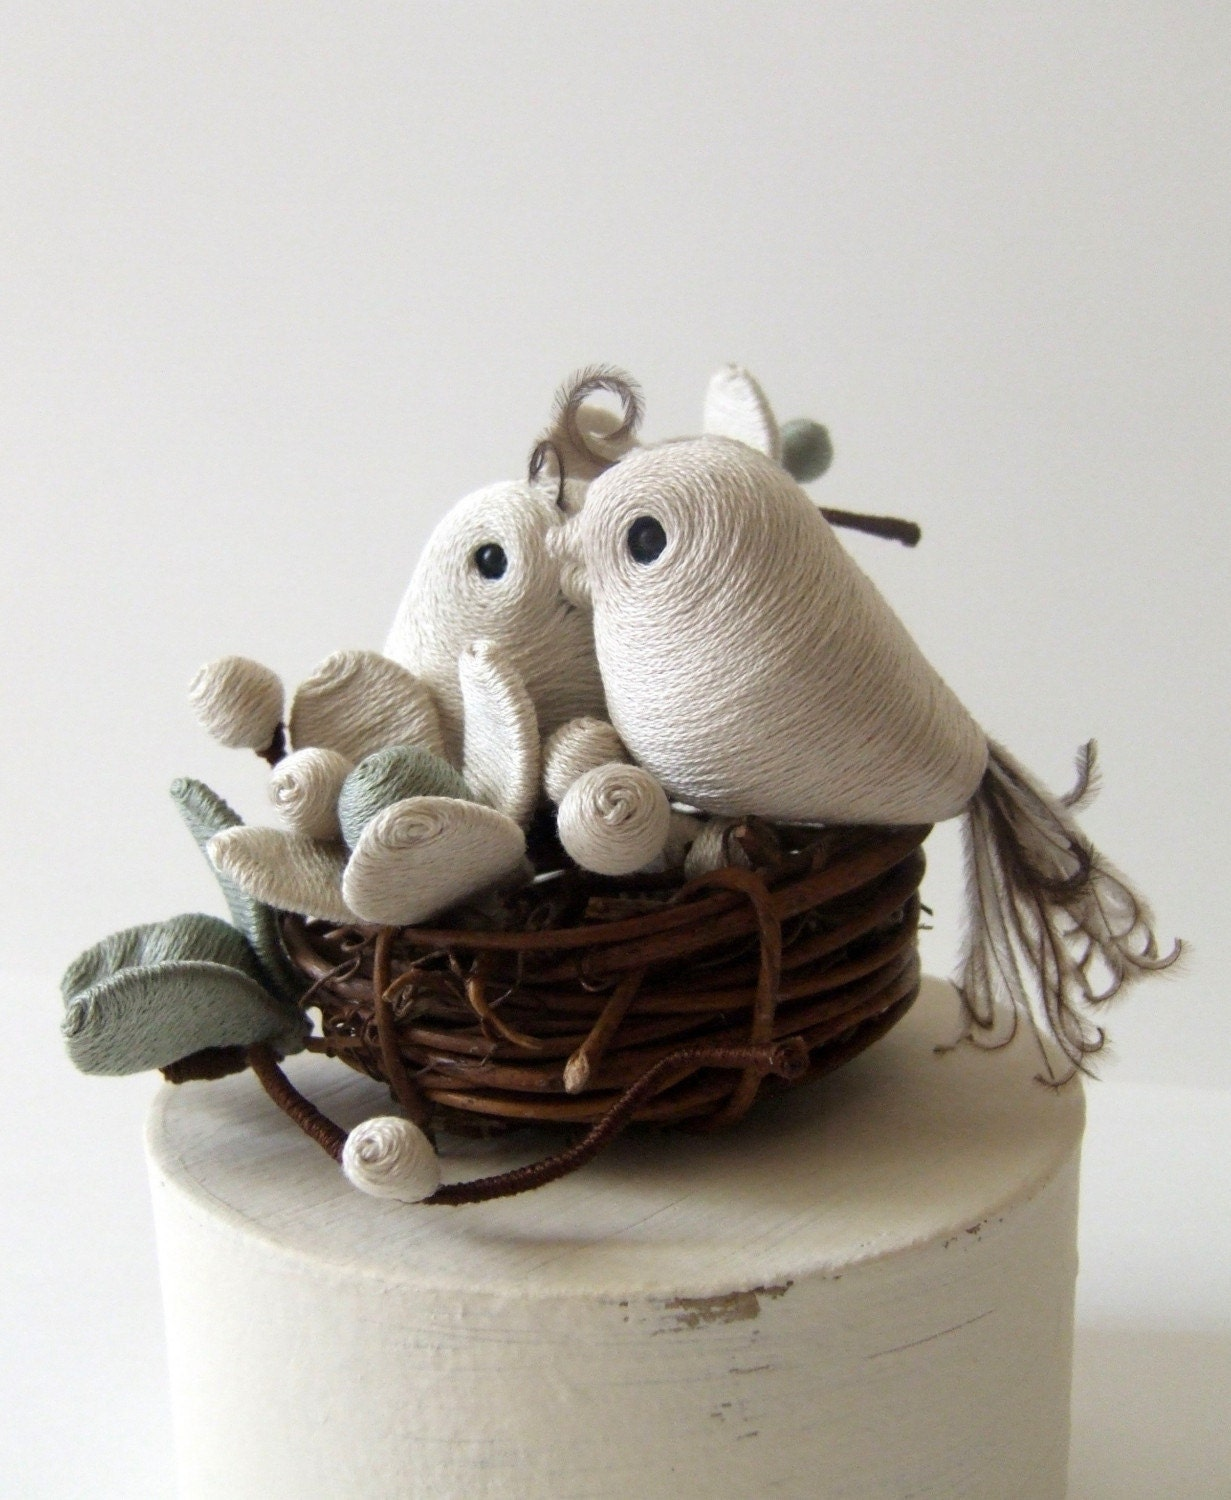 Petite Plumes Wedding NestBird Cake Topper by Perch52 on Etsy from etsy.com